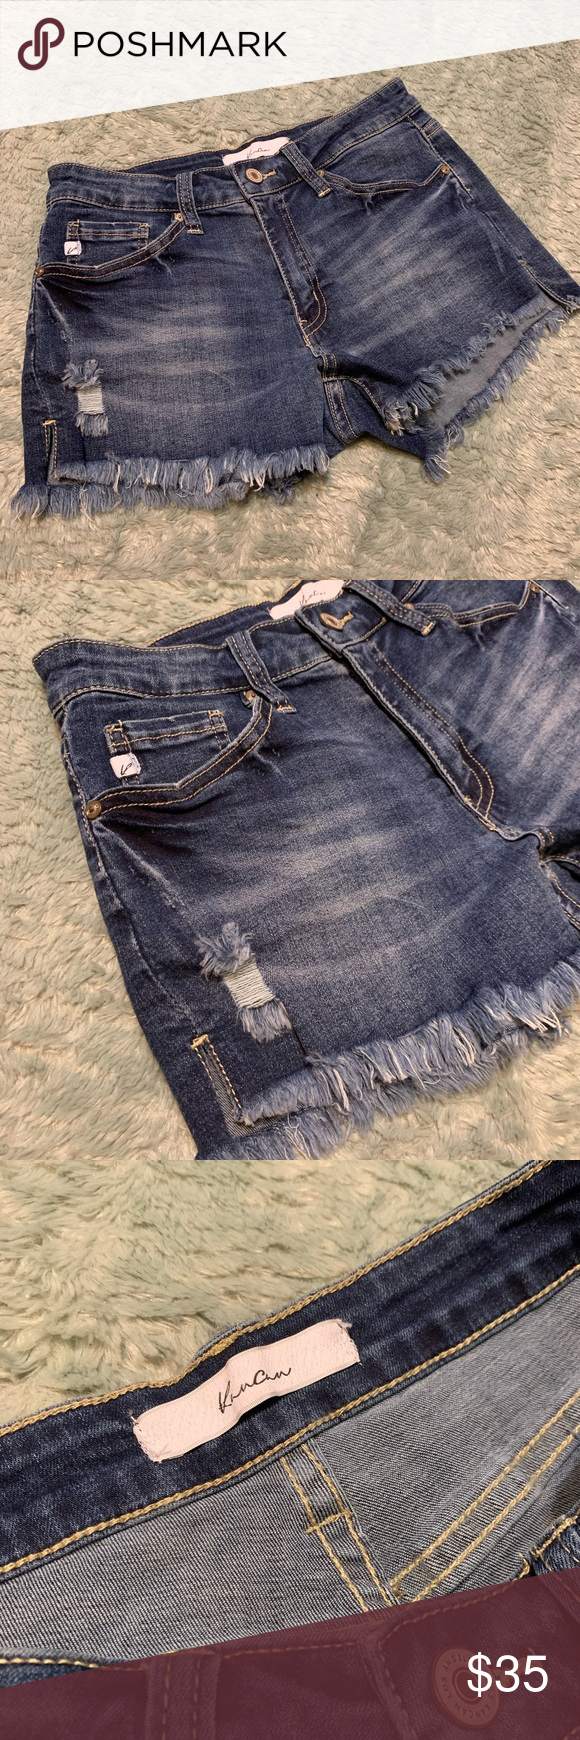 "KanCan Mid Wash Distressed Denim Cutoff Shorts KanCan Mid Wash Distressed Denim Cutoff Shorts  Good condition.   Waist: 14"" Length: 10"" KanCan Shorts Jean Shorts #denimcutoffshorts KanCan Mid Wash Distressed Denim Cutoff Shorts KanCan Mid Wash Distressed Denim Cutoff Shorts  Good condition.   Waist: 14"" Length: 10"" KanCan Shorts Jean Shorts #denimcutoffshorts"